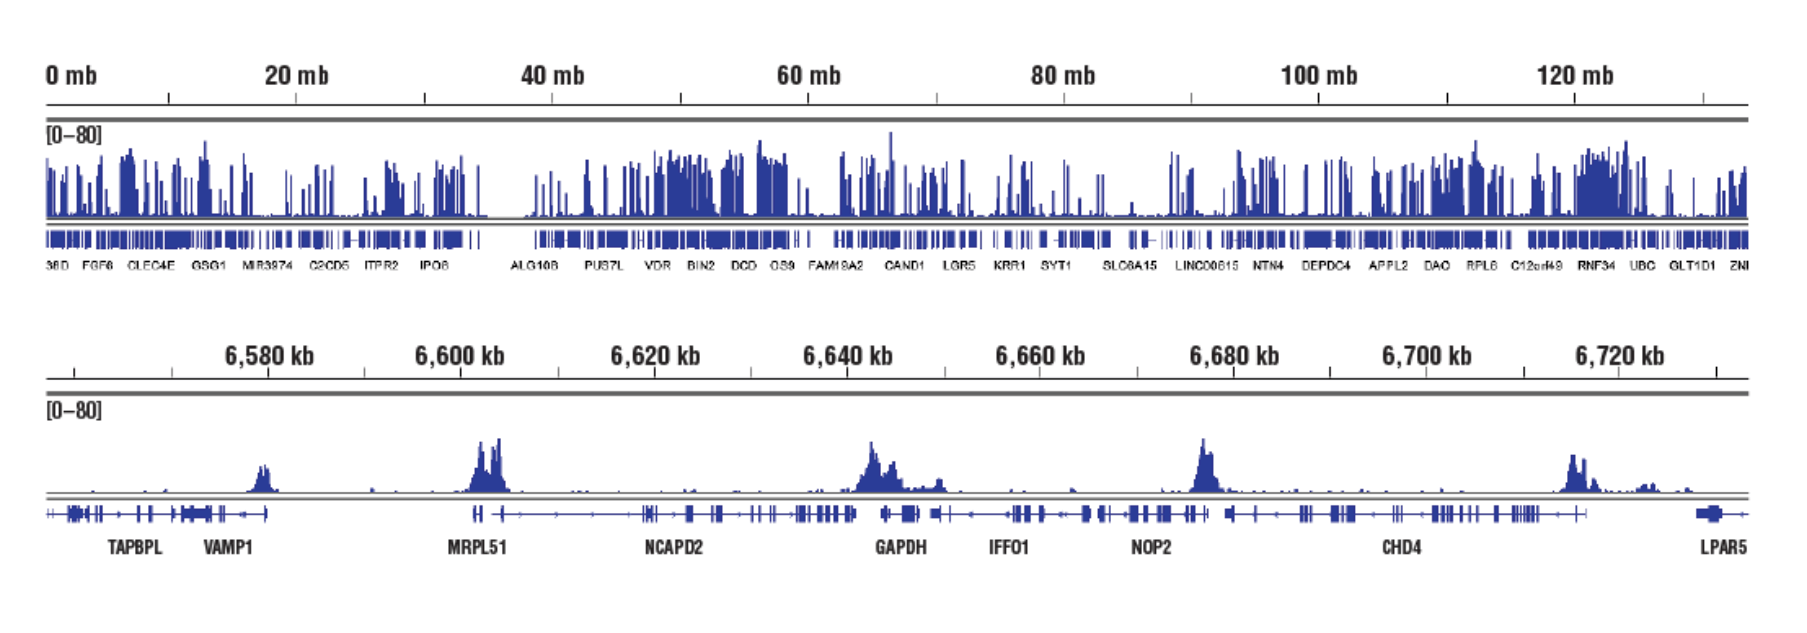 Accessible Chromatin, Target: H3K4me3